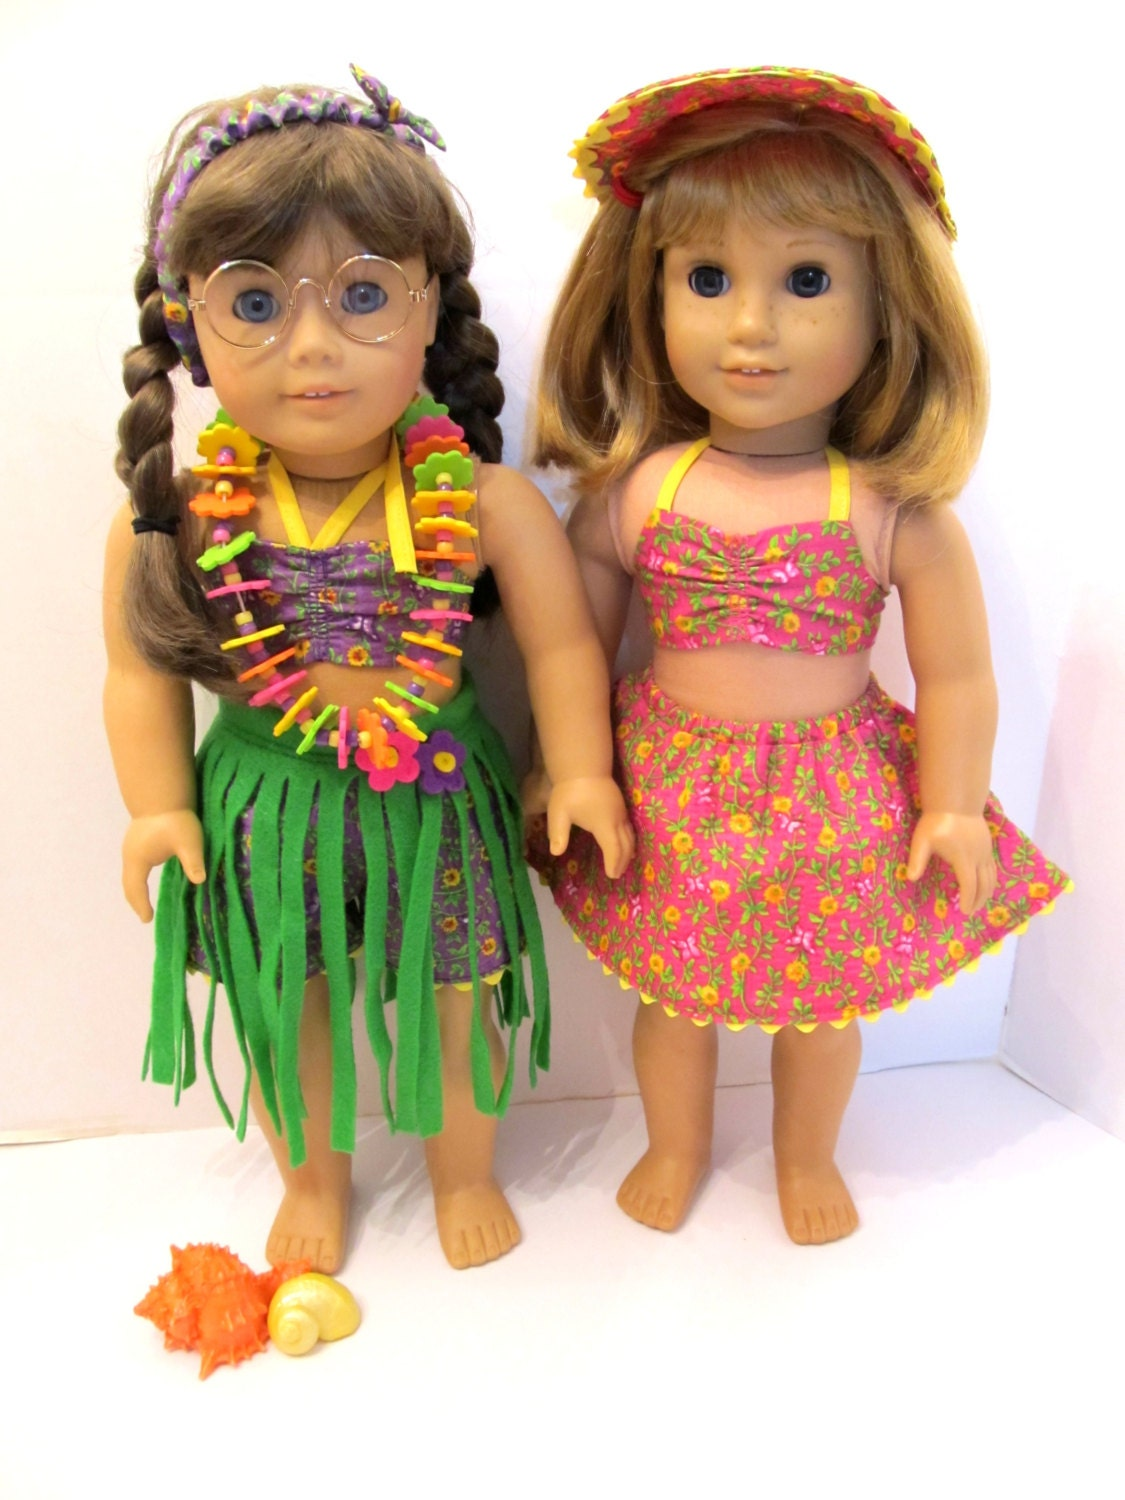 american girl 18 in doll molly beach wear hula skirt. Black Bedroom Furniture Sets. Home Design Ideas